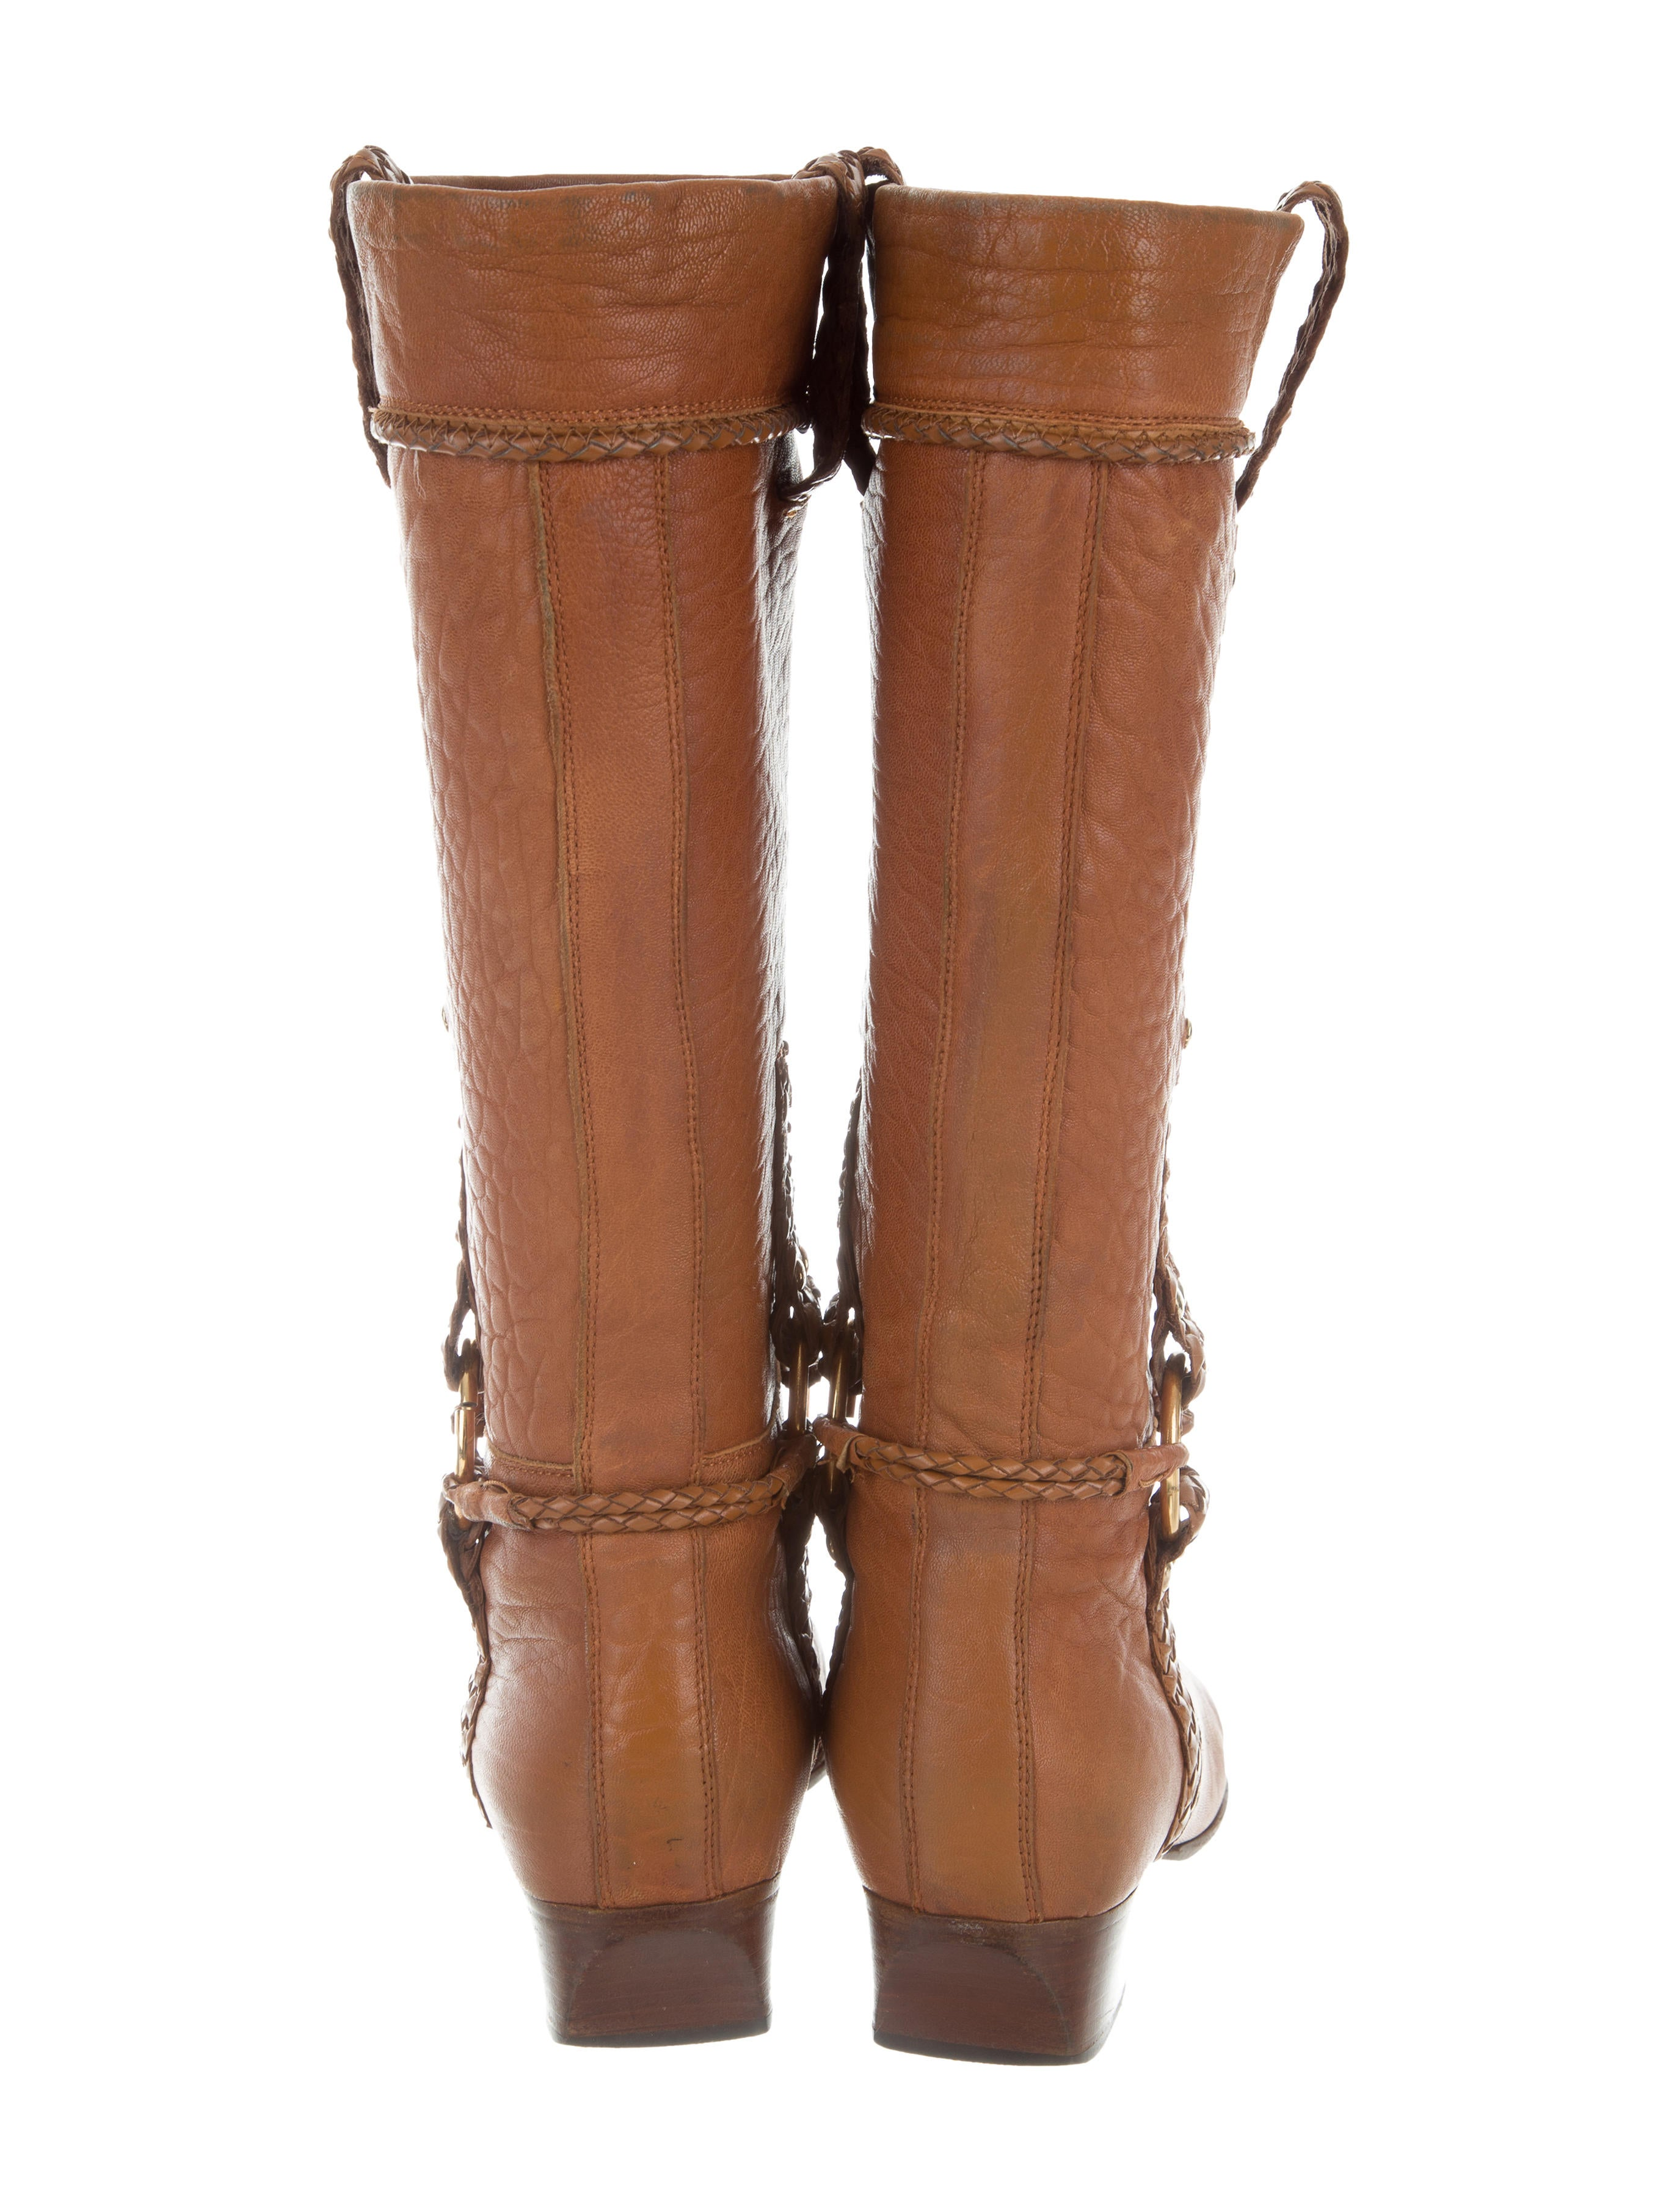 fendi leather mid calf boots shoes fen62993 the realreal